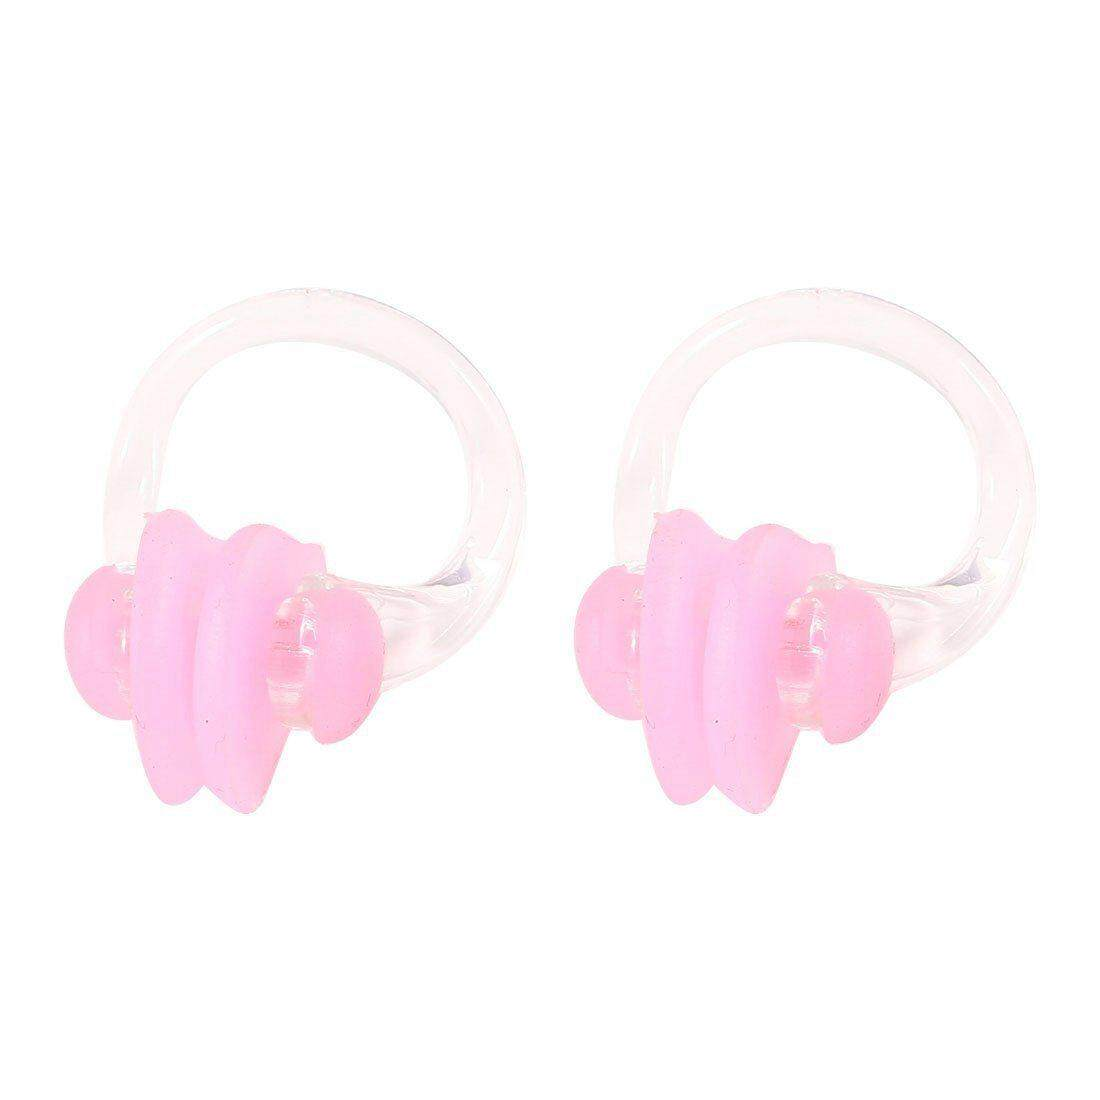 Protective silicone nose clip pink - 2 pieces